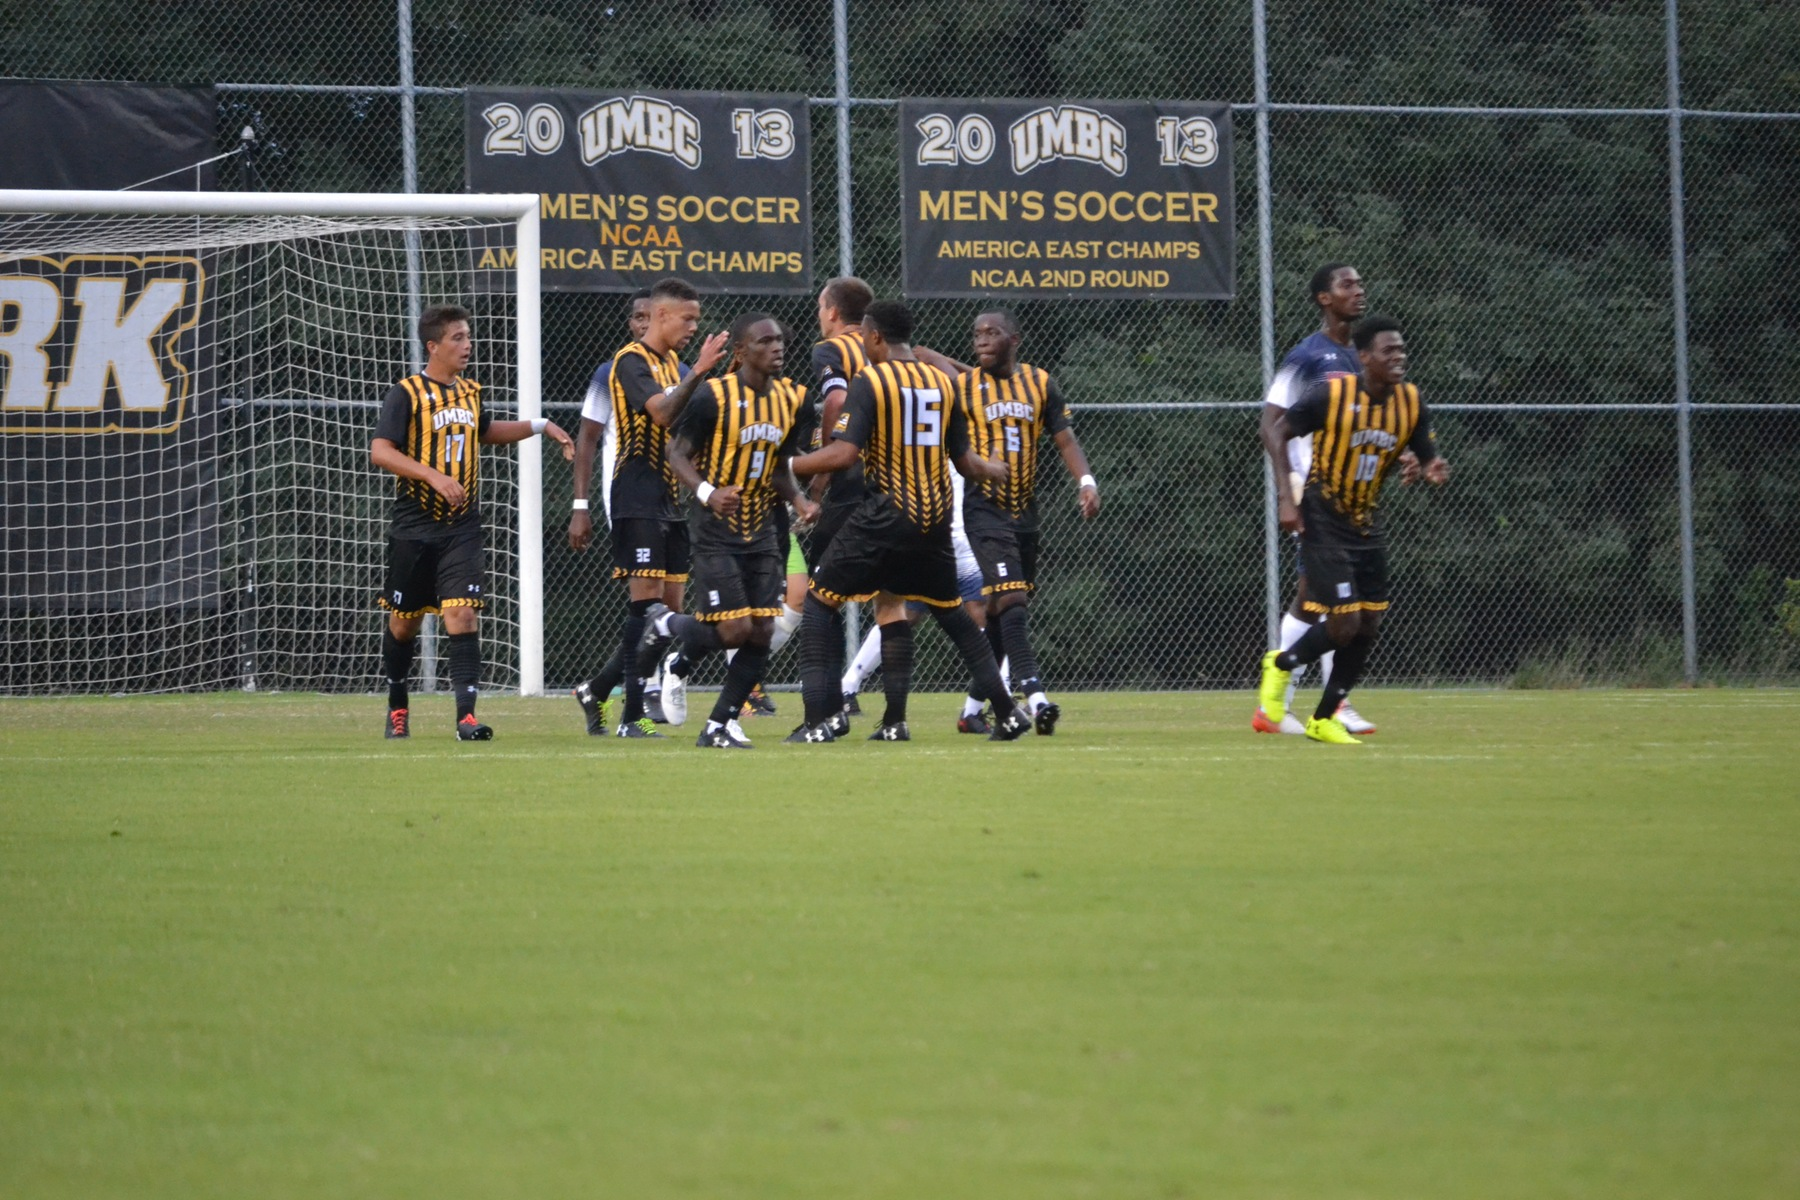 UMBC Men's Soccer Blanks Howard 3-0 on Monday Night in Front of a Record Crowd